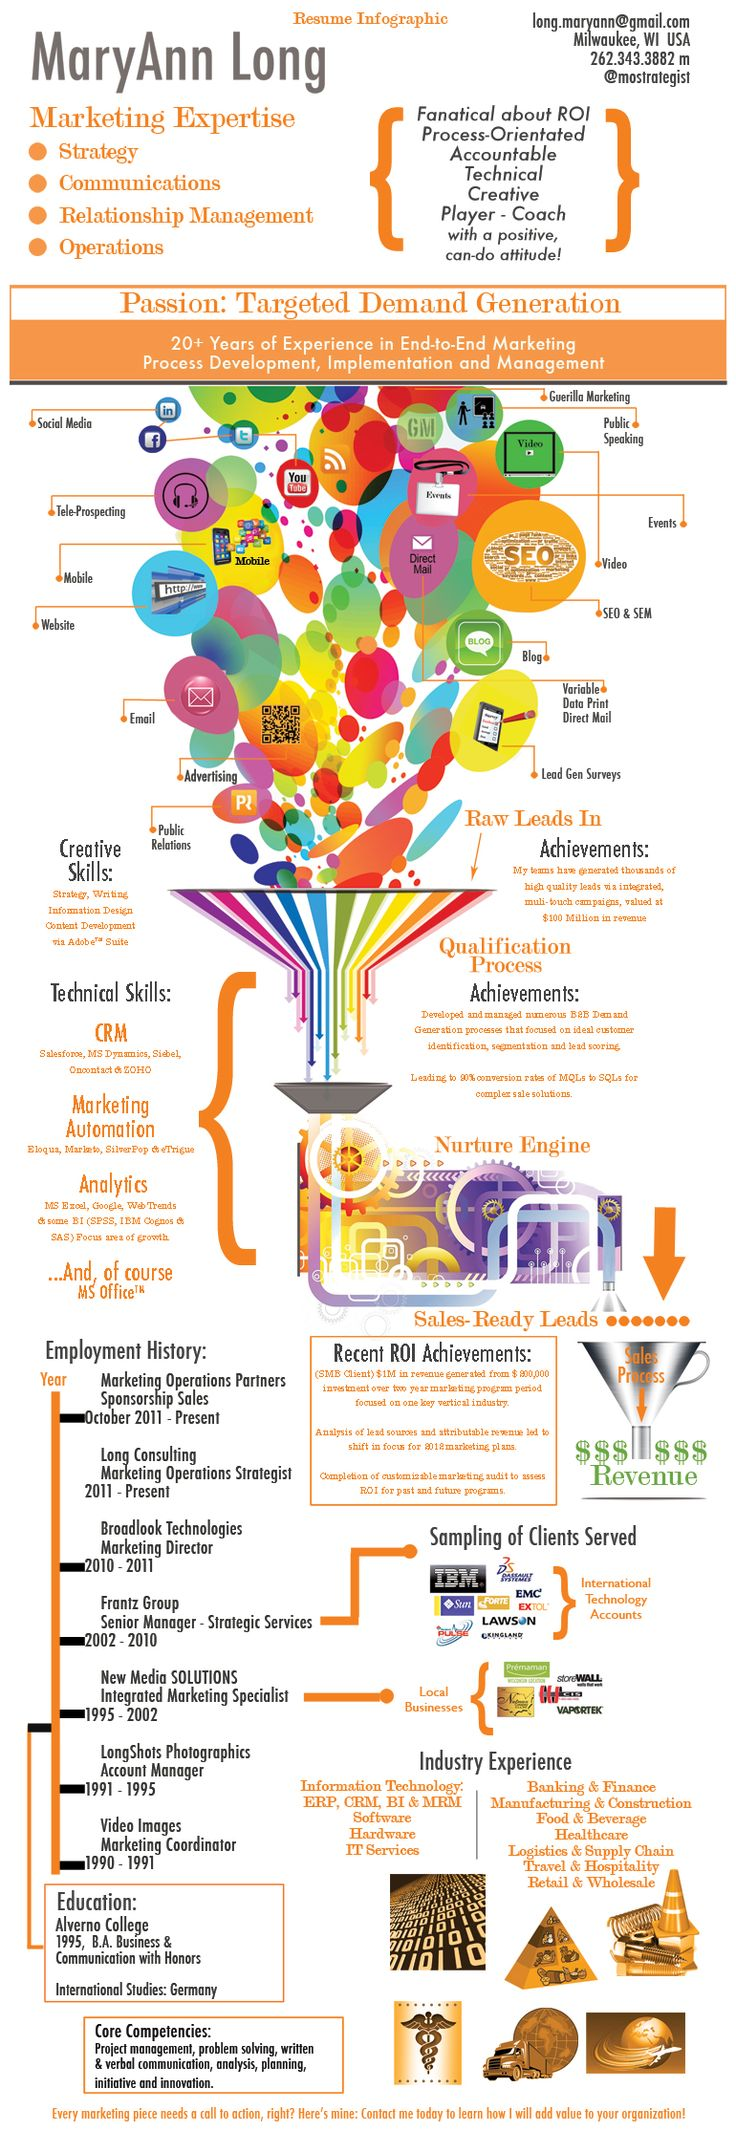 infographic resume - mary ann long